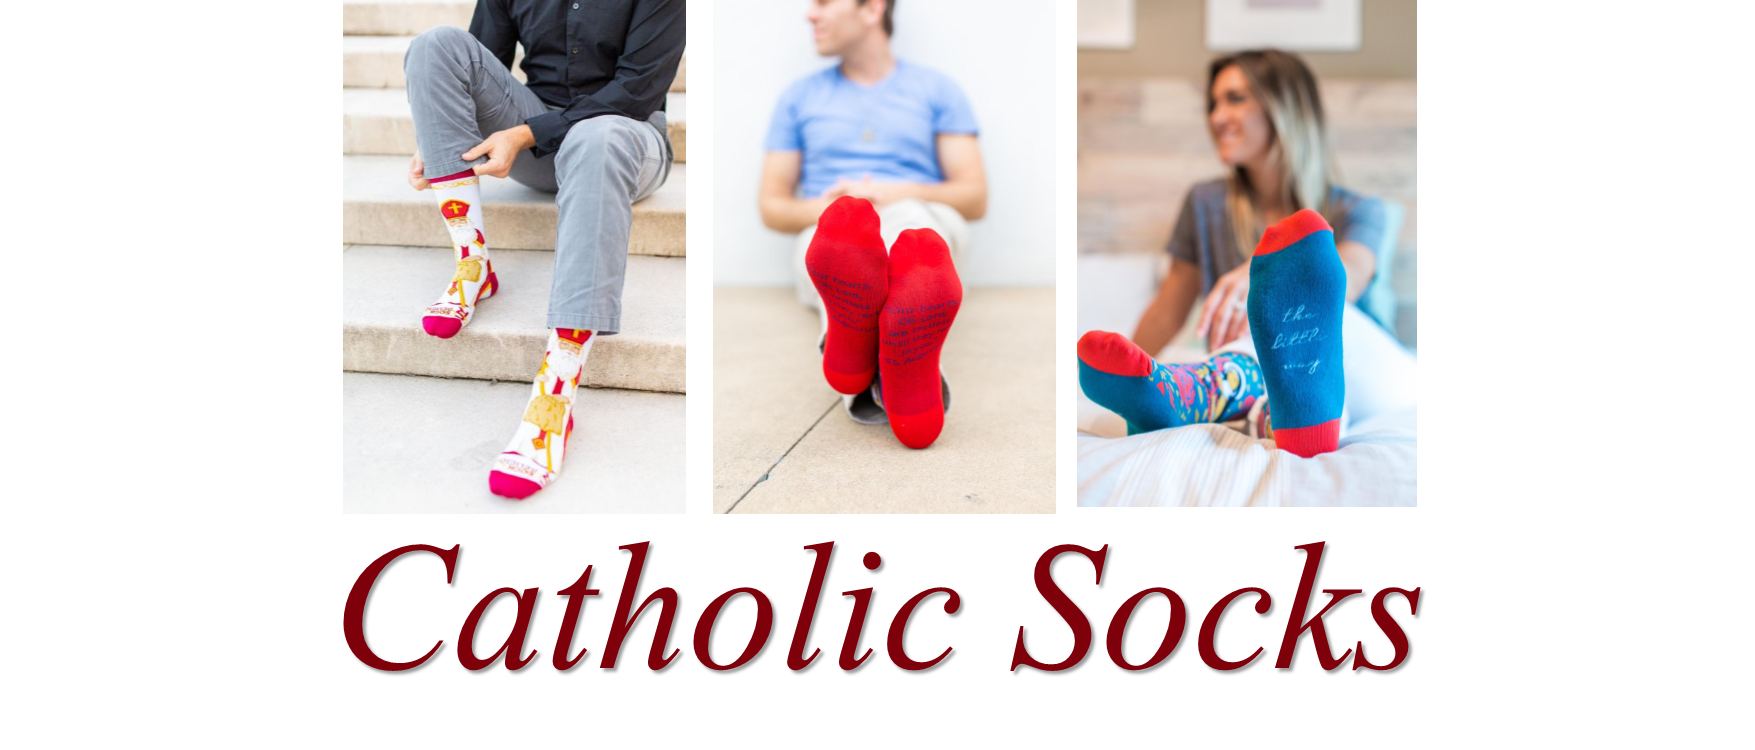 8 Catholic Socks - Home Page Slider